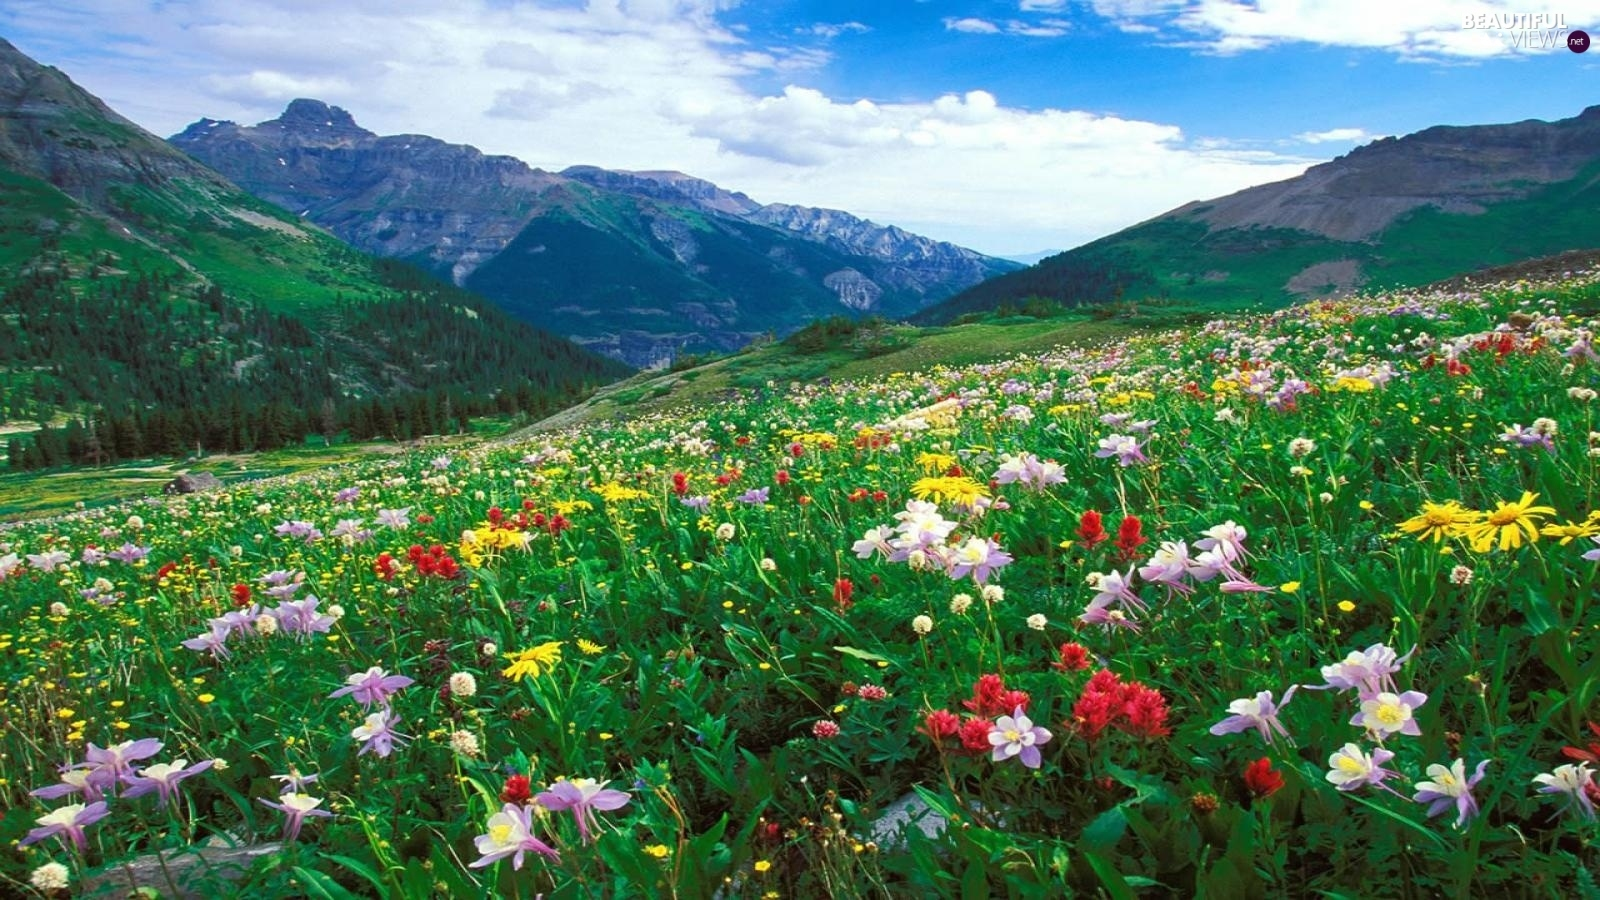 Mountains, Meadow, Flowers